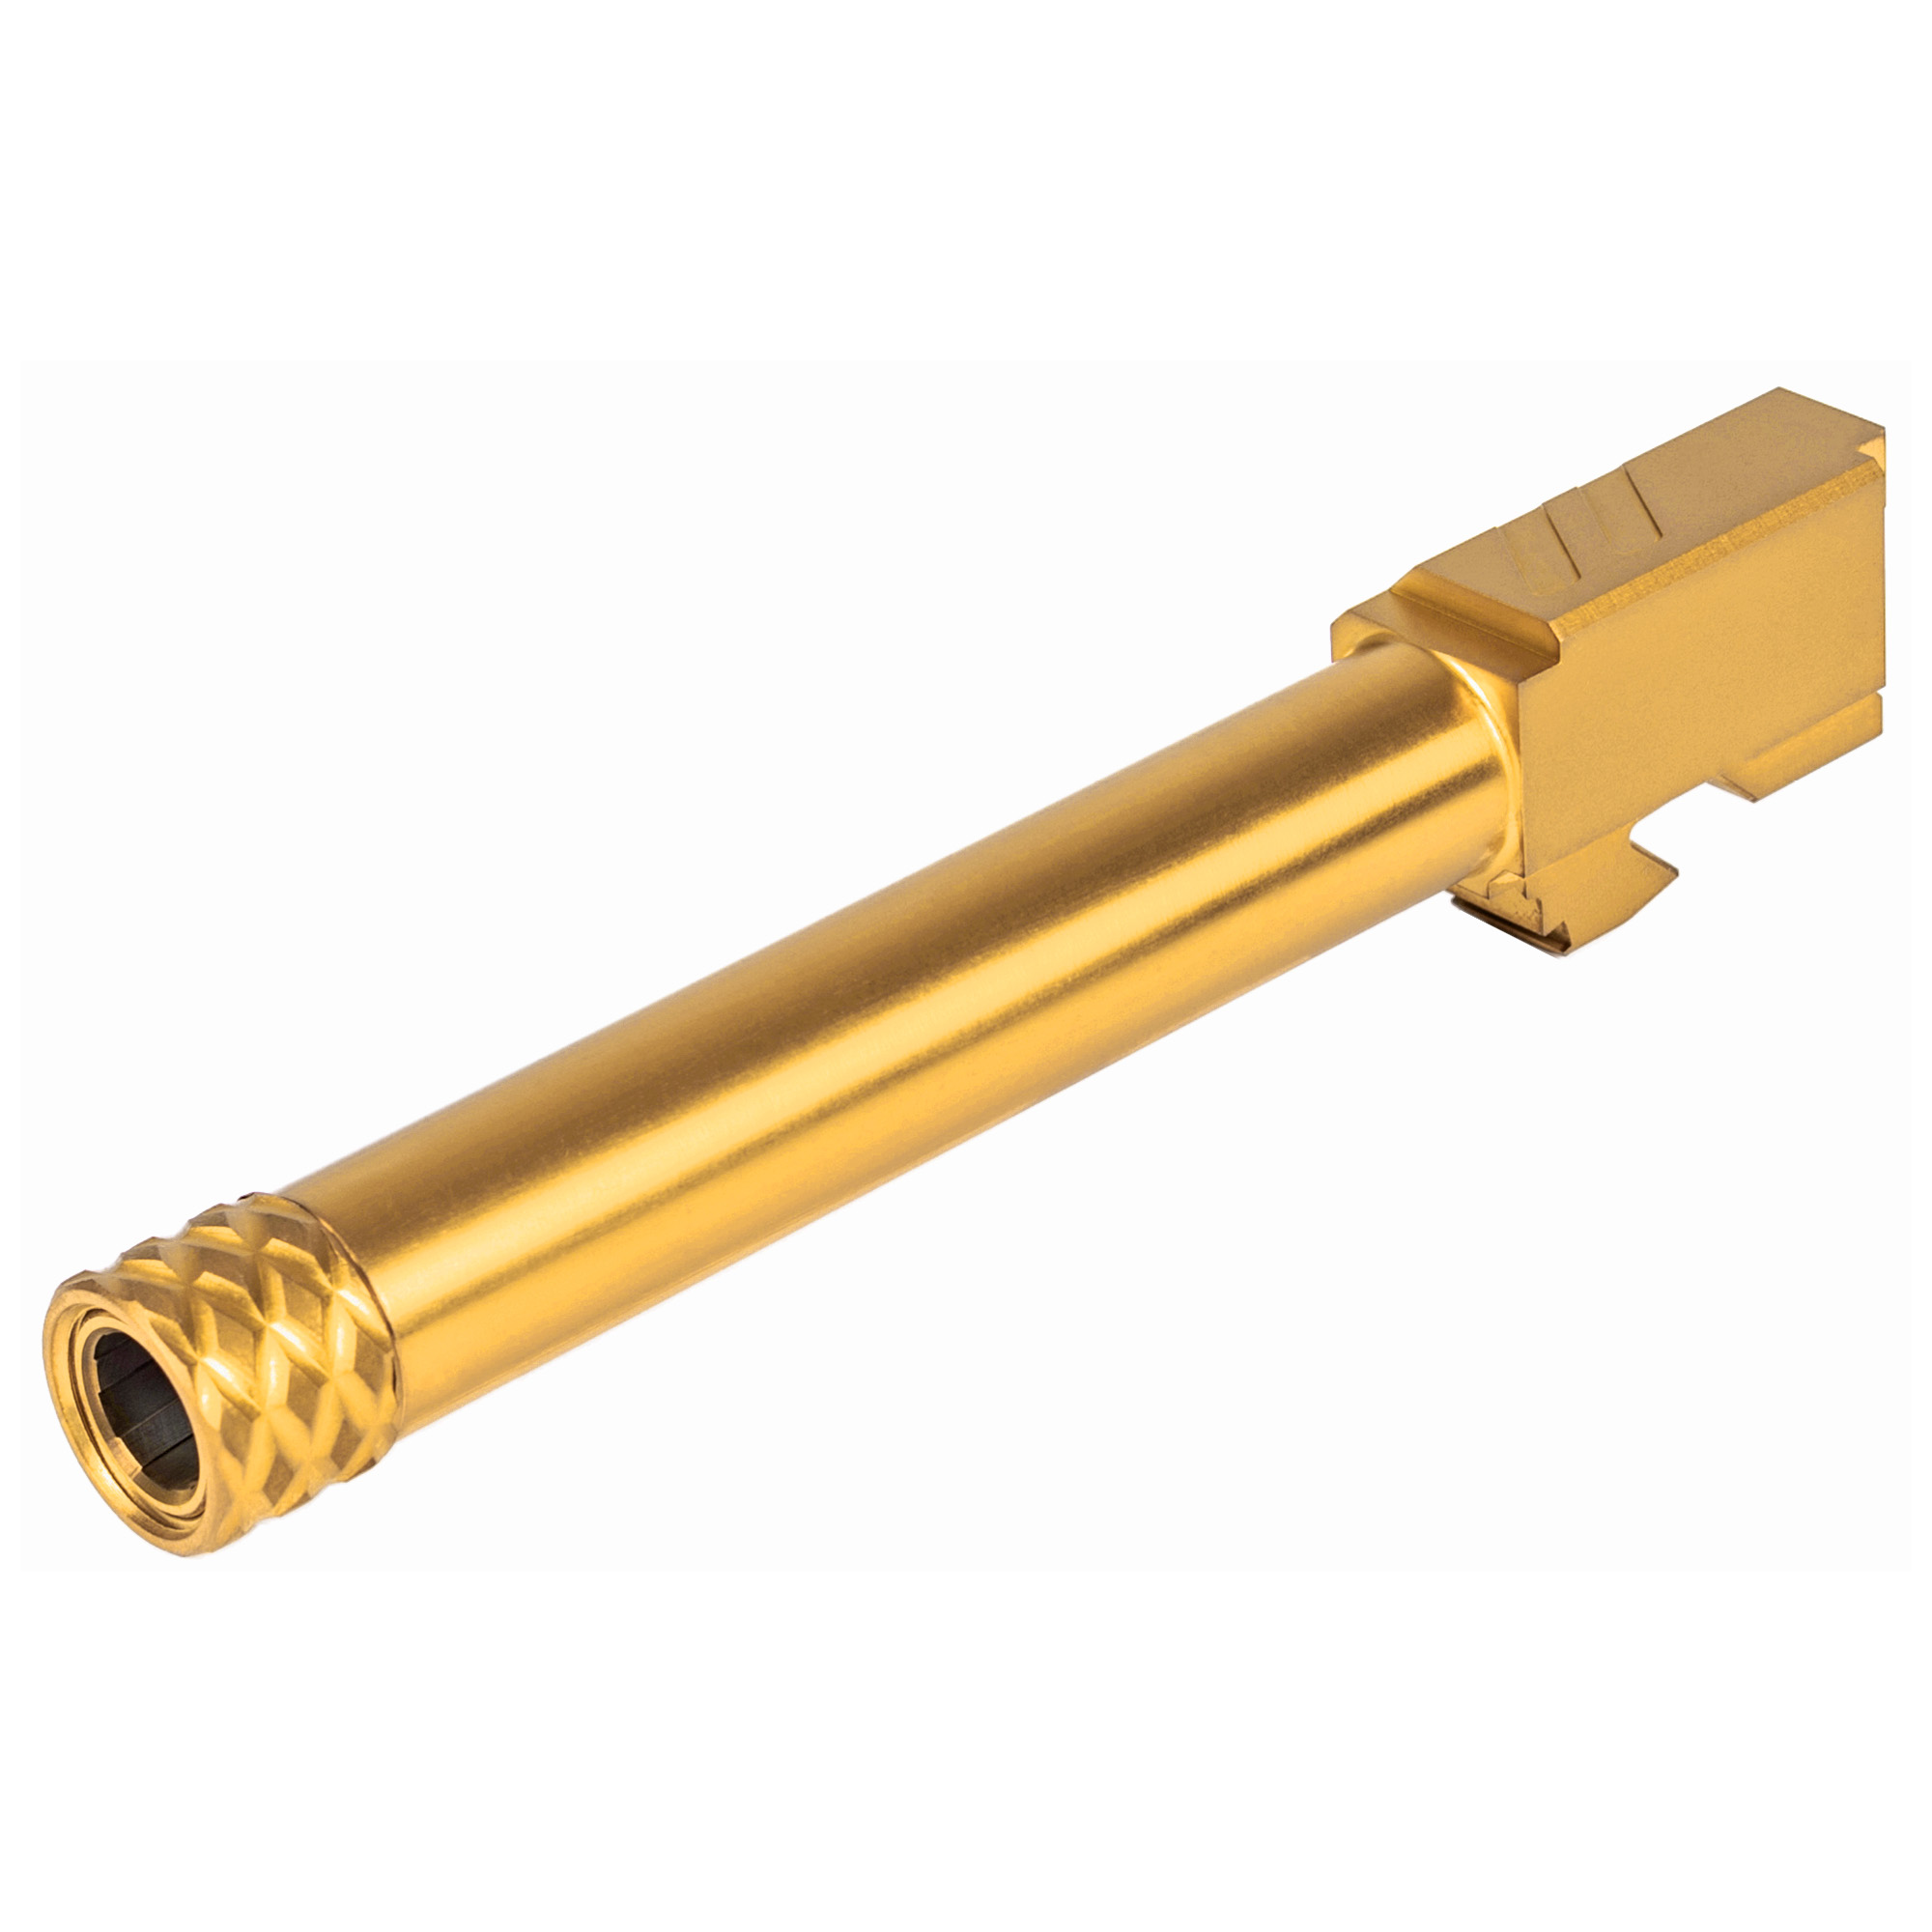 ZEV Technologies, Pro Barrel, Threaded, 9MM, For Glock 17 (Gen1-4), Gold Finish